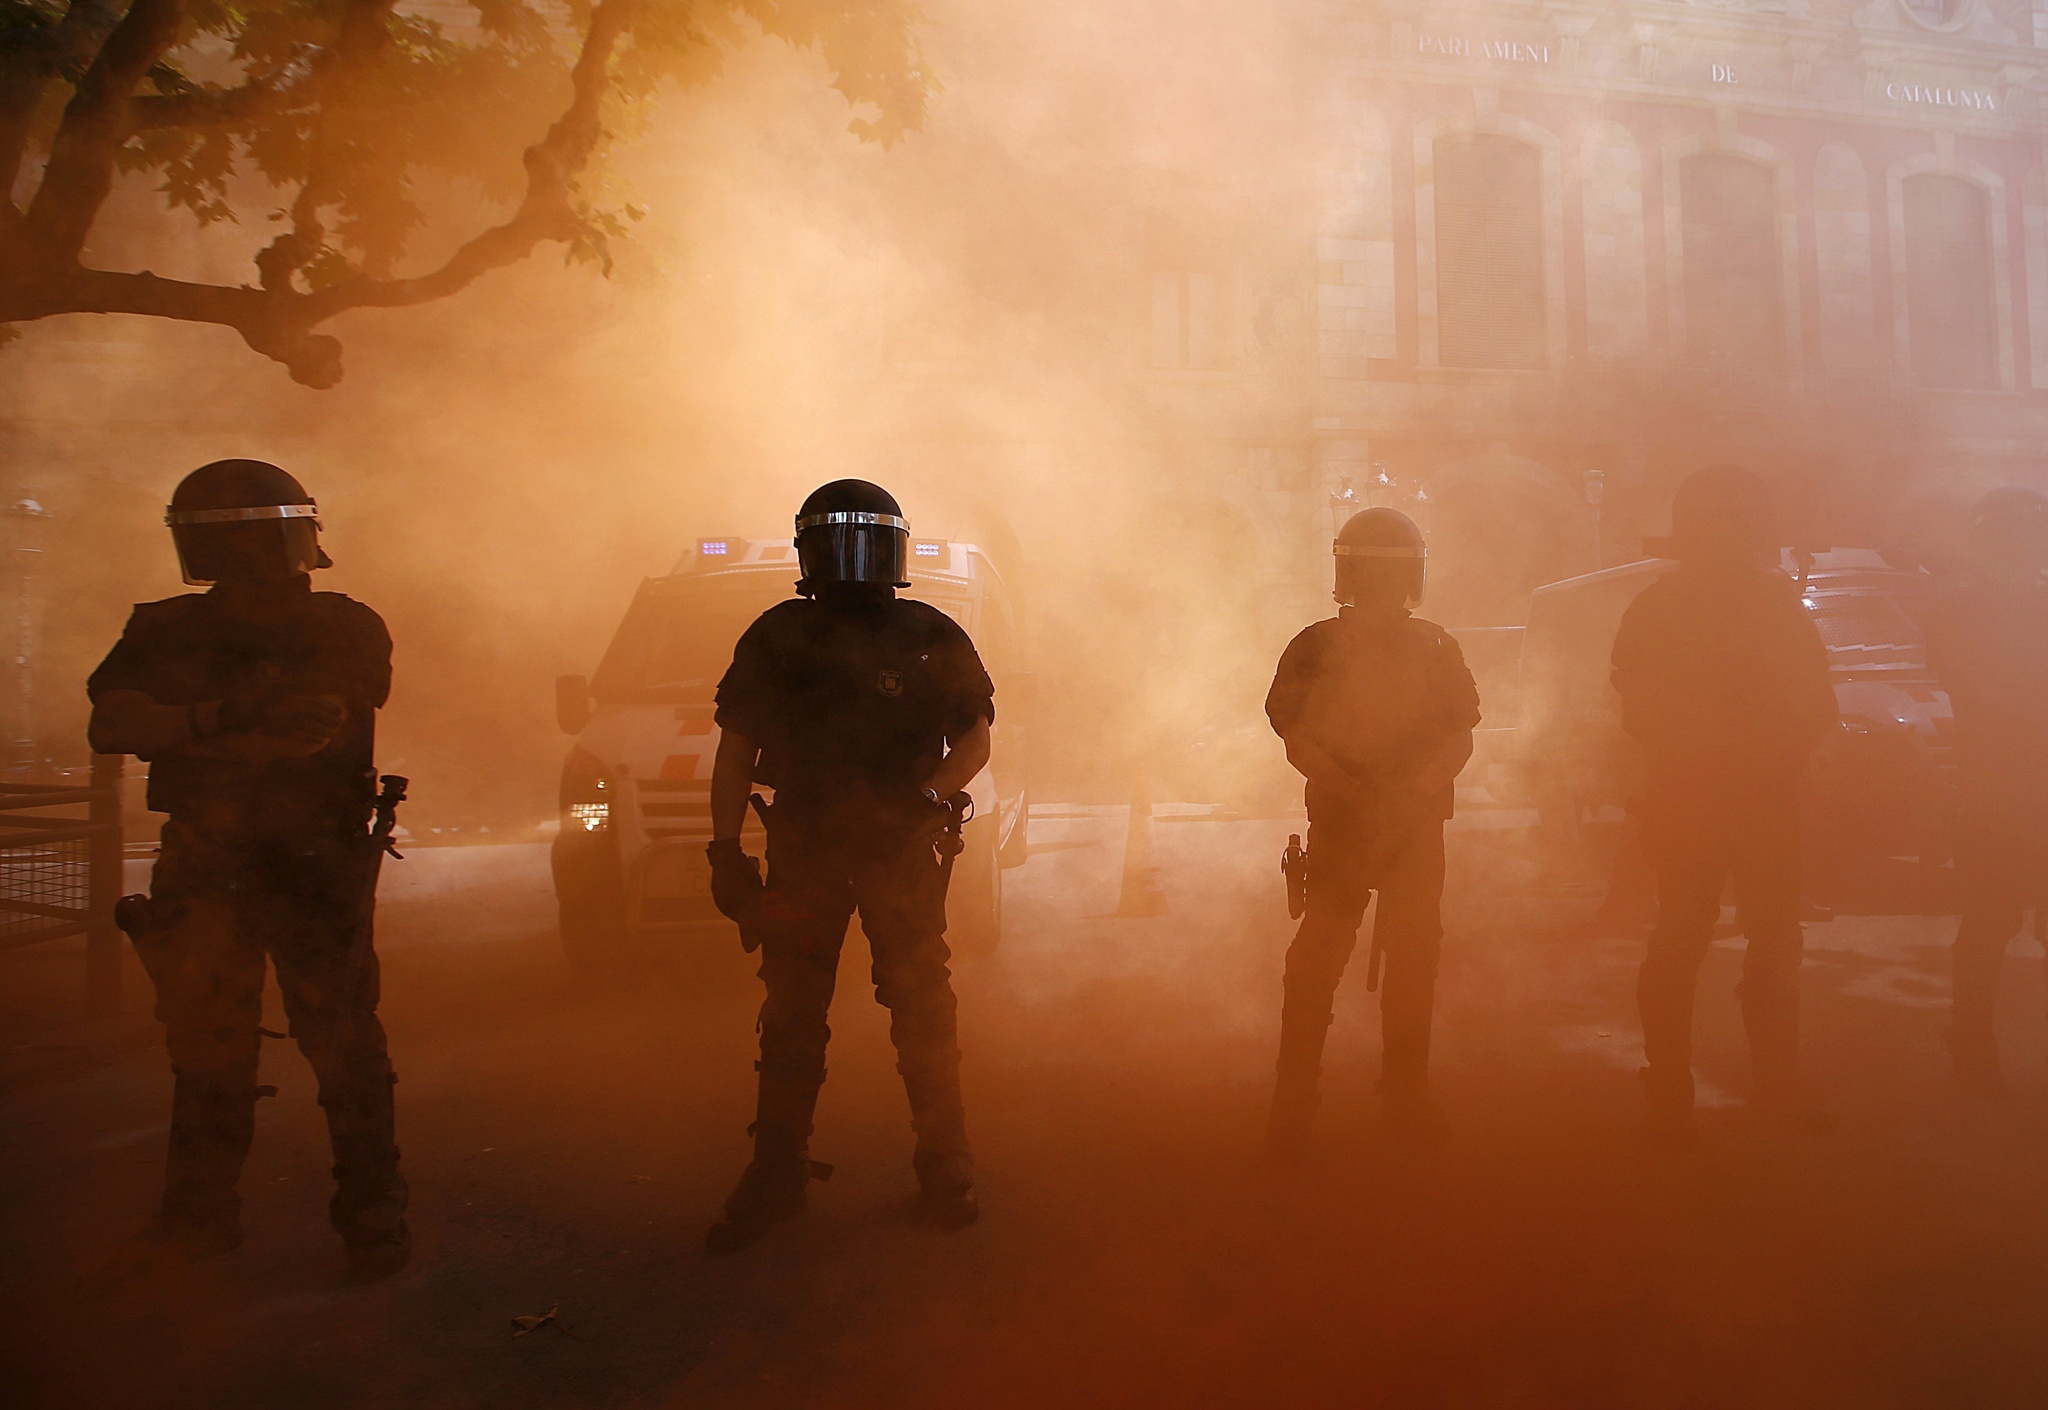 Riot police stand among red smoke during protest by a firemen against budgets cuts next to Catalunya's Parliament in Barcelona...Riot police stand among red smoke during protest by a firemen against budgets cuts next to Catalunya's Parliament in Barcelona June 10, 2014. REUTERS/Albert Gea